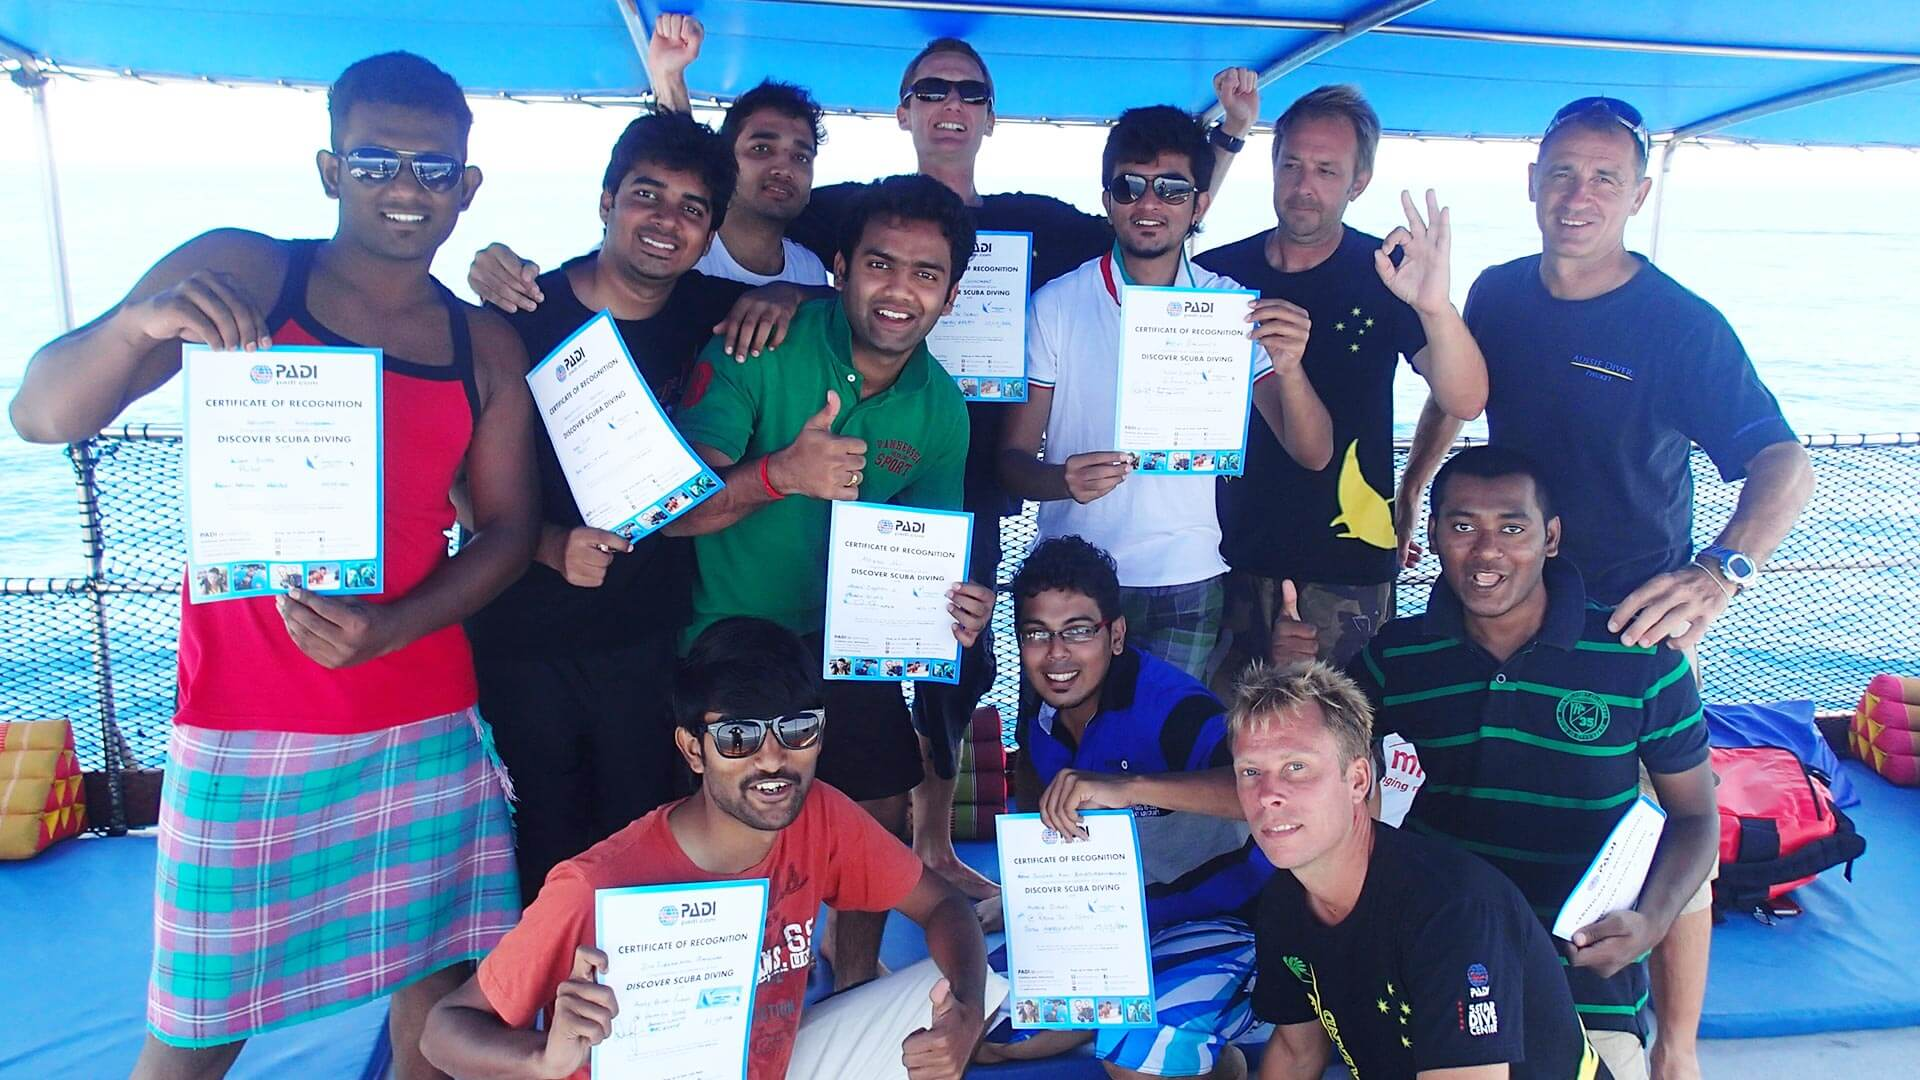 The Typical PADI Discover Scuba Diving Day